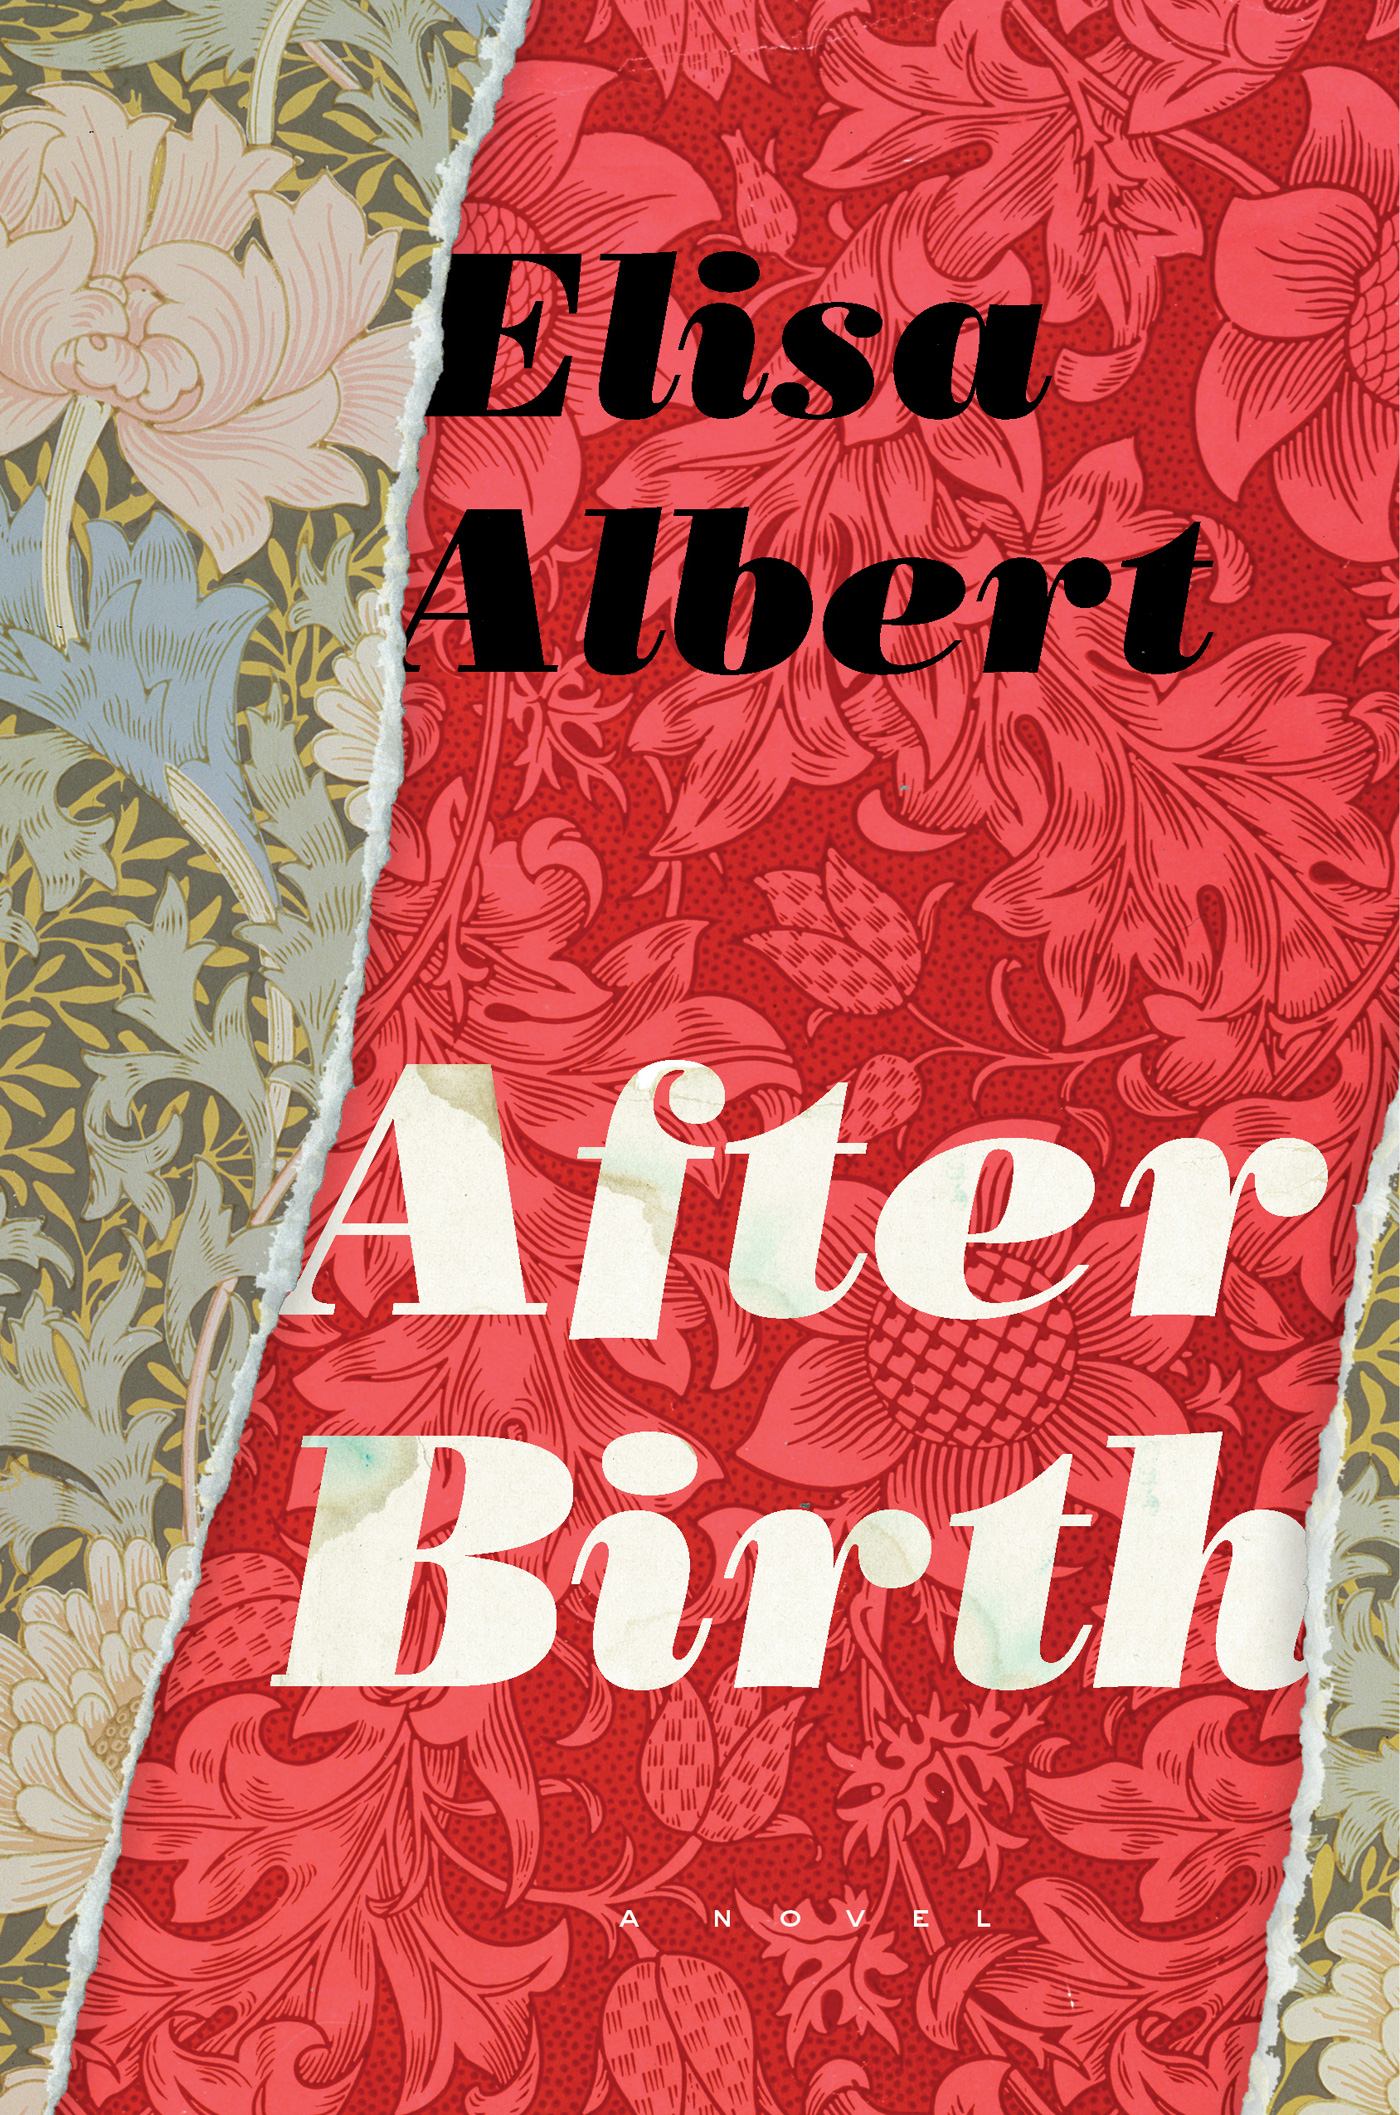 After Birth, coming in 2015